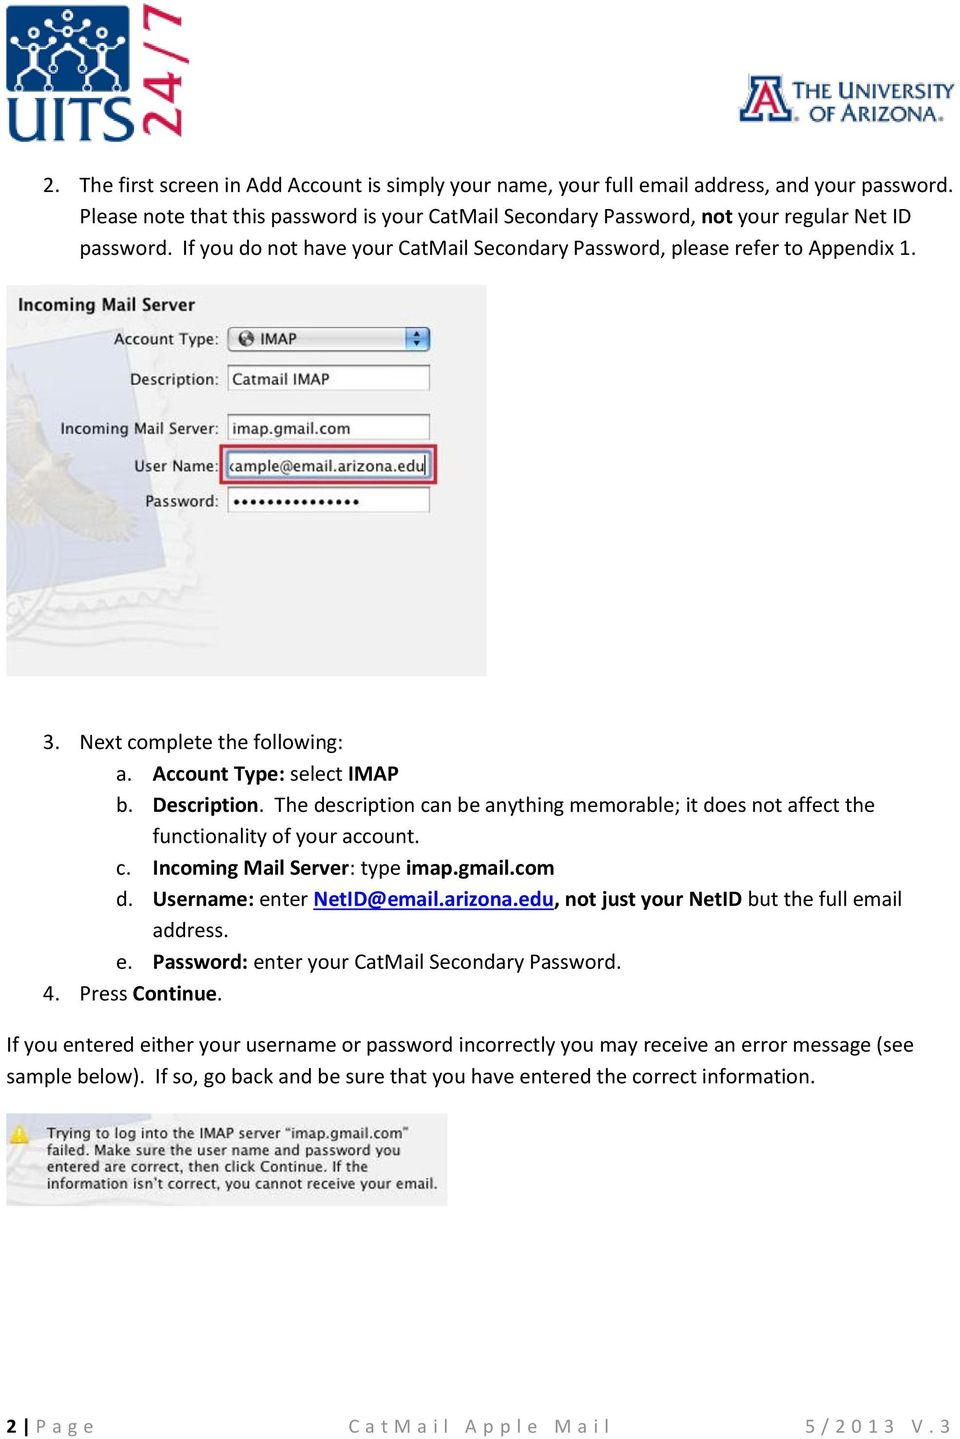 The description can be anything memorable; it does not affect the functionality of your account. c. Incoming Mail Server: type imap.gmail.com d. Username: enter NetID@email.arizona.